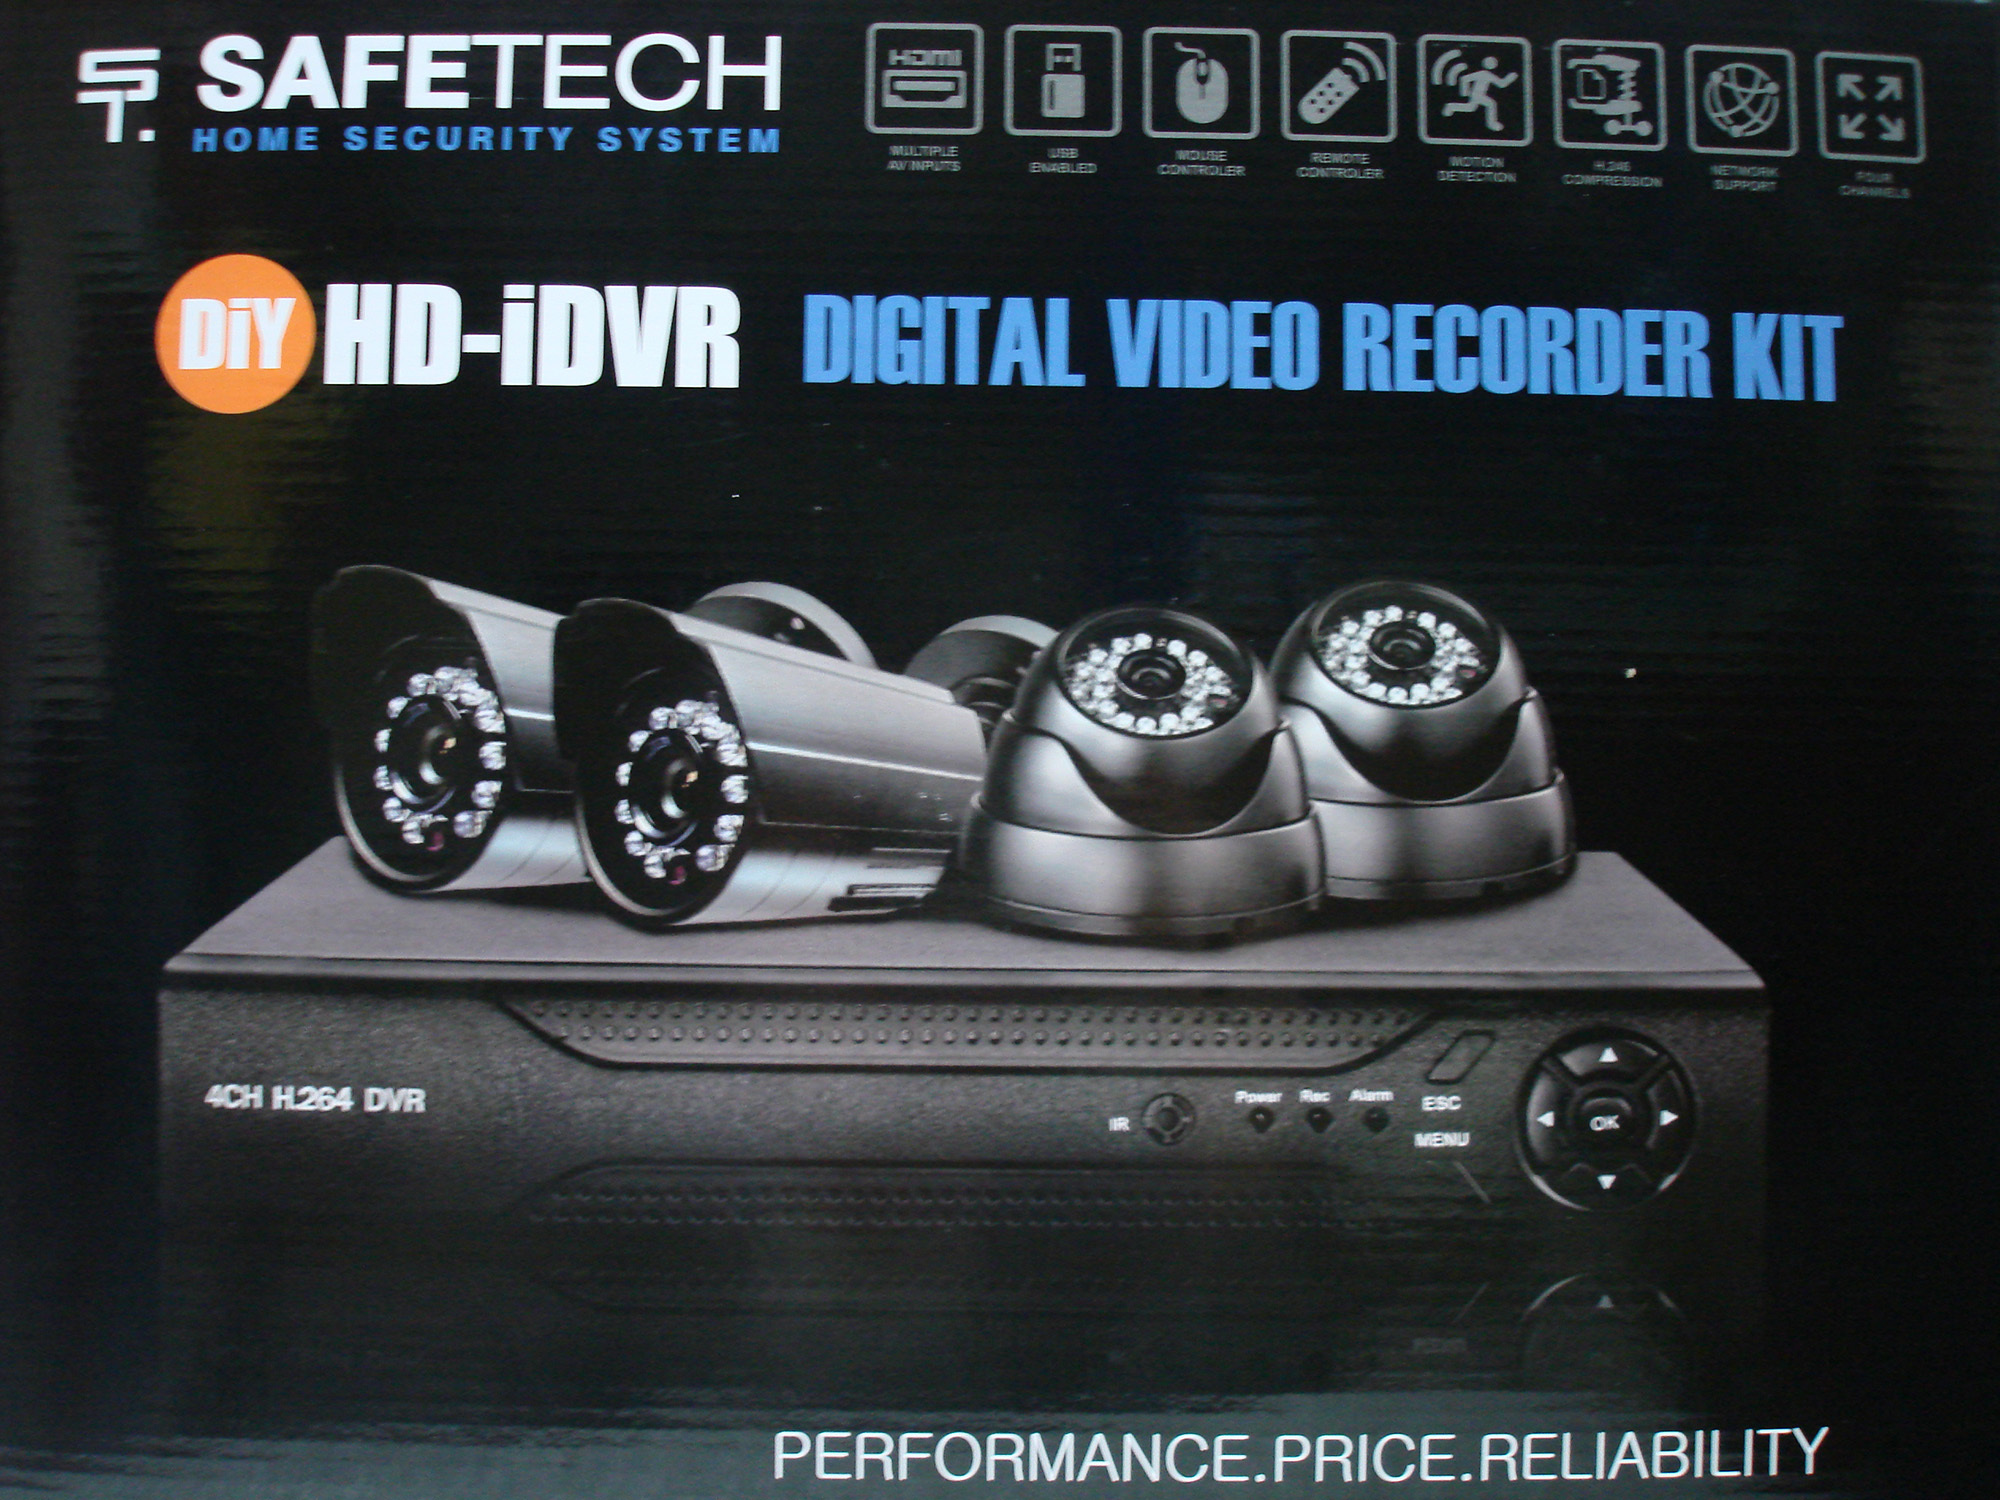 SAFETECH DVRK4200 HD-IDVR Digital Video Recorder Kit (4806509153881)